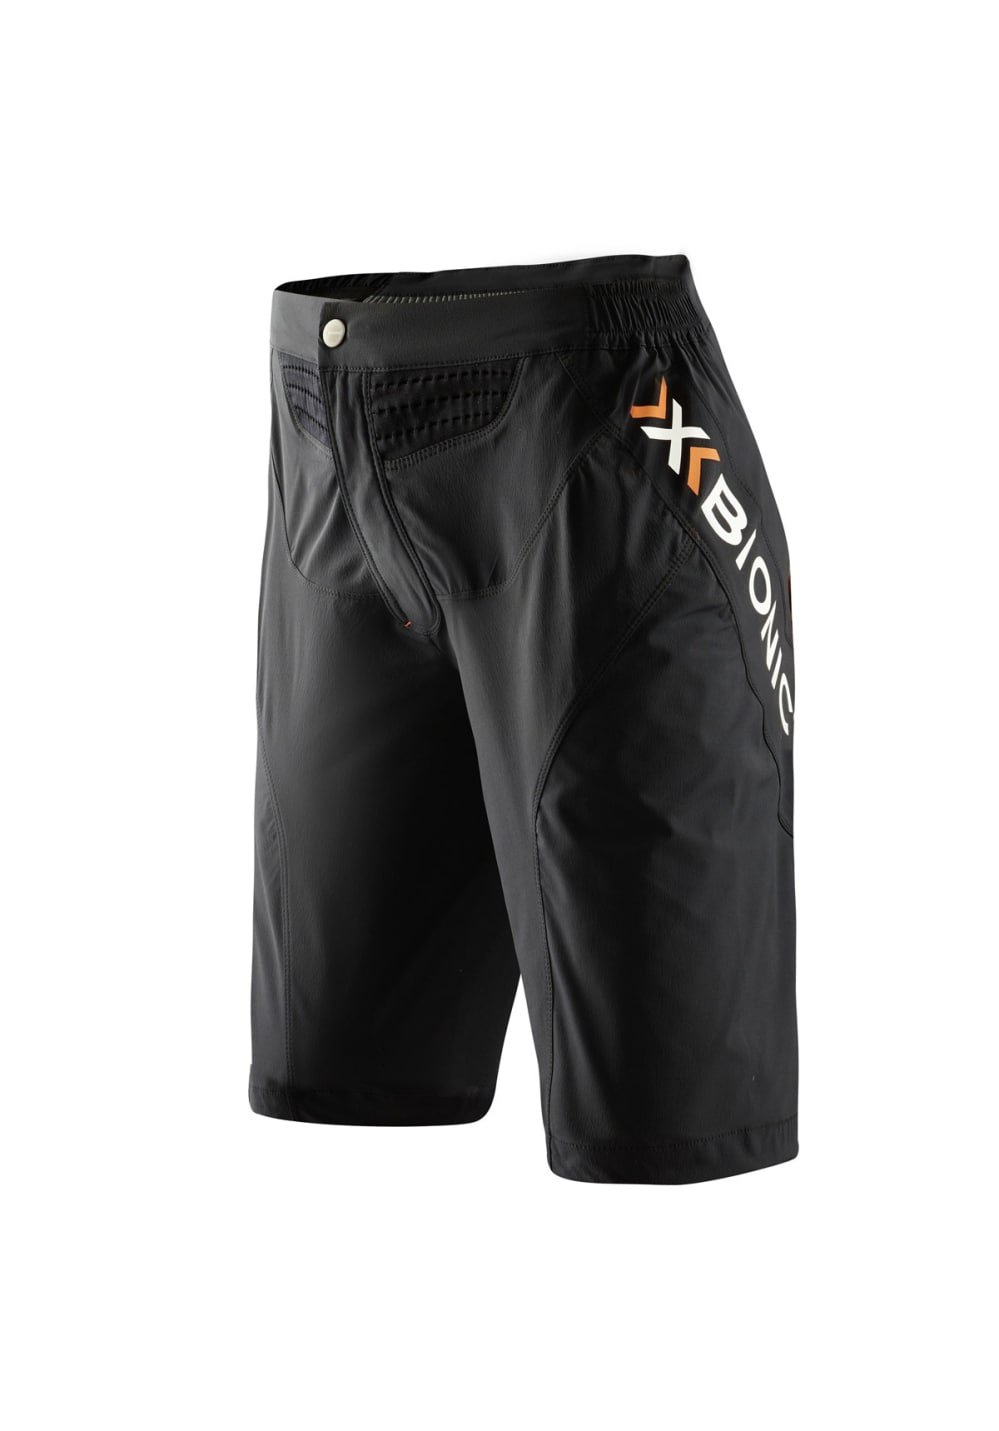 X-Bionic Mountain Bike Pants Short - Hosen für ...